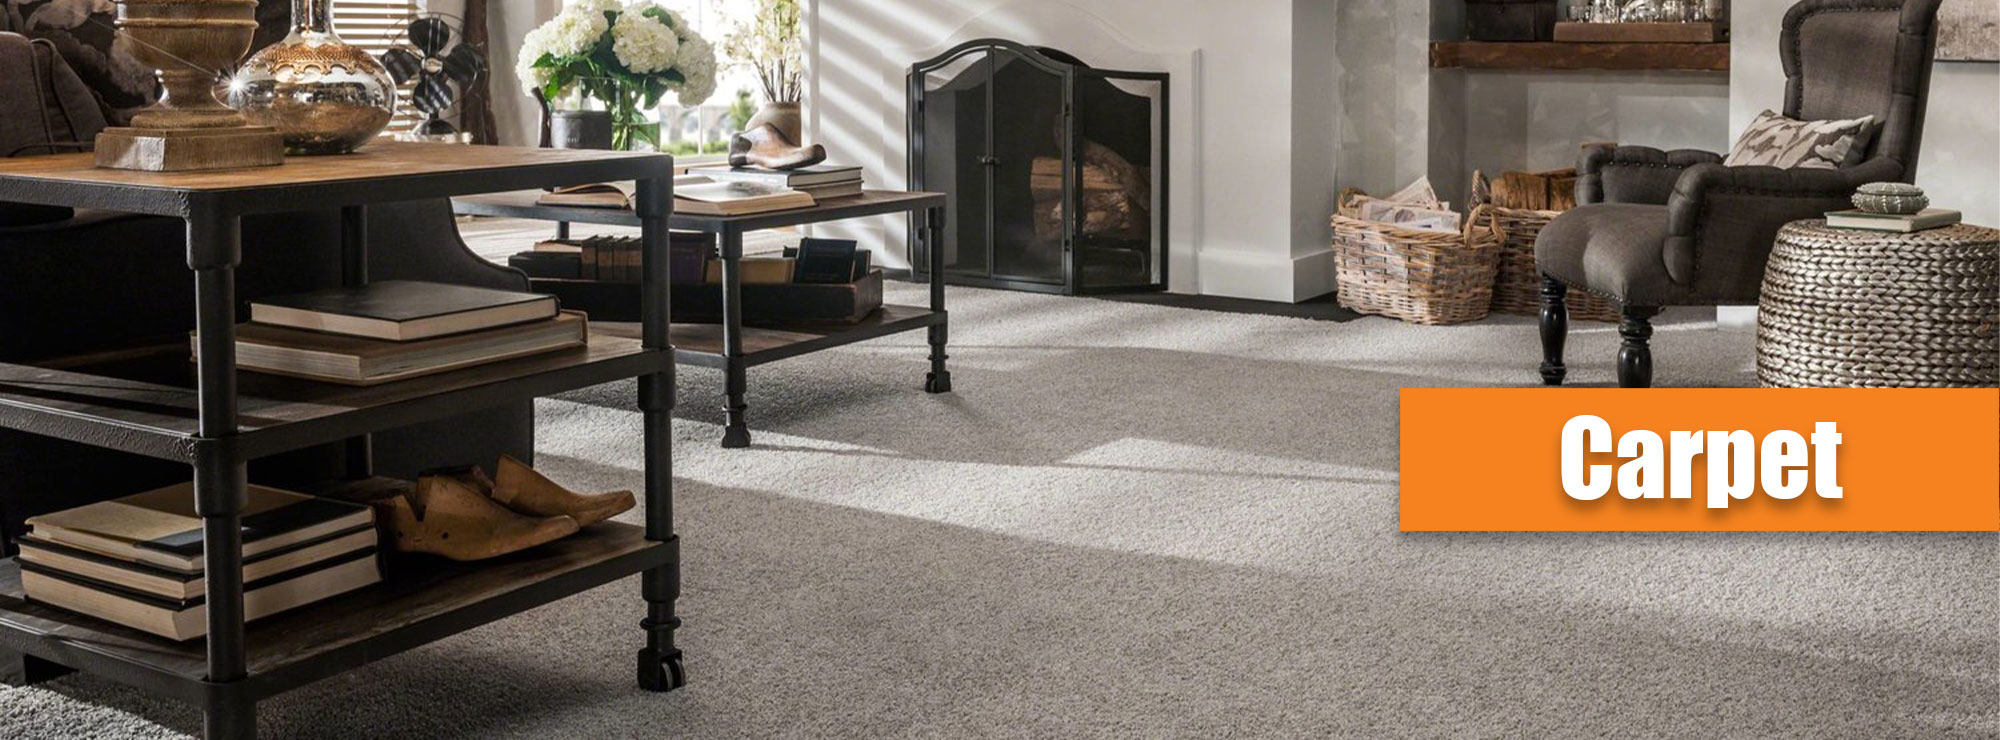 Carpet To Go Flooring Carpet Sales And Installation Wide Variety Of Brands